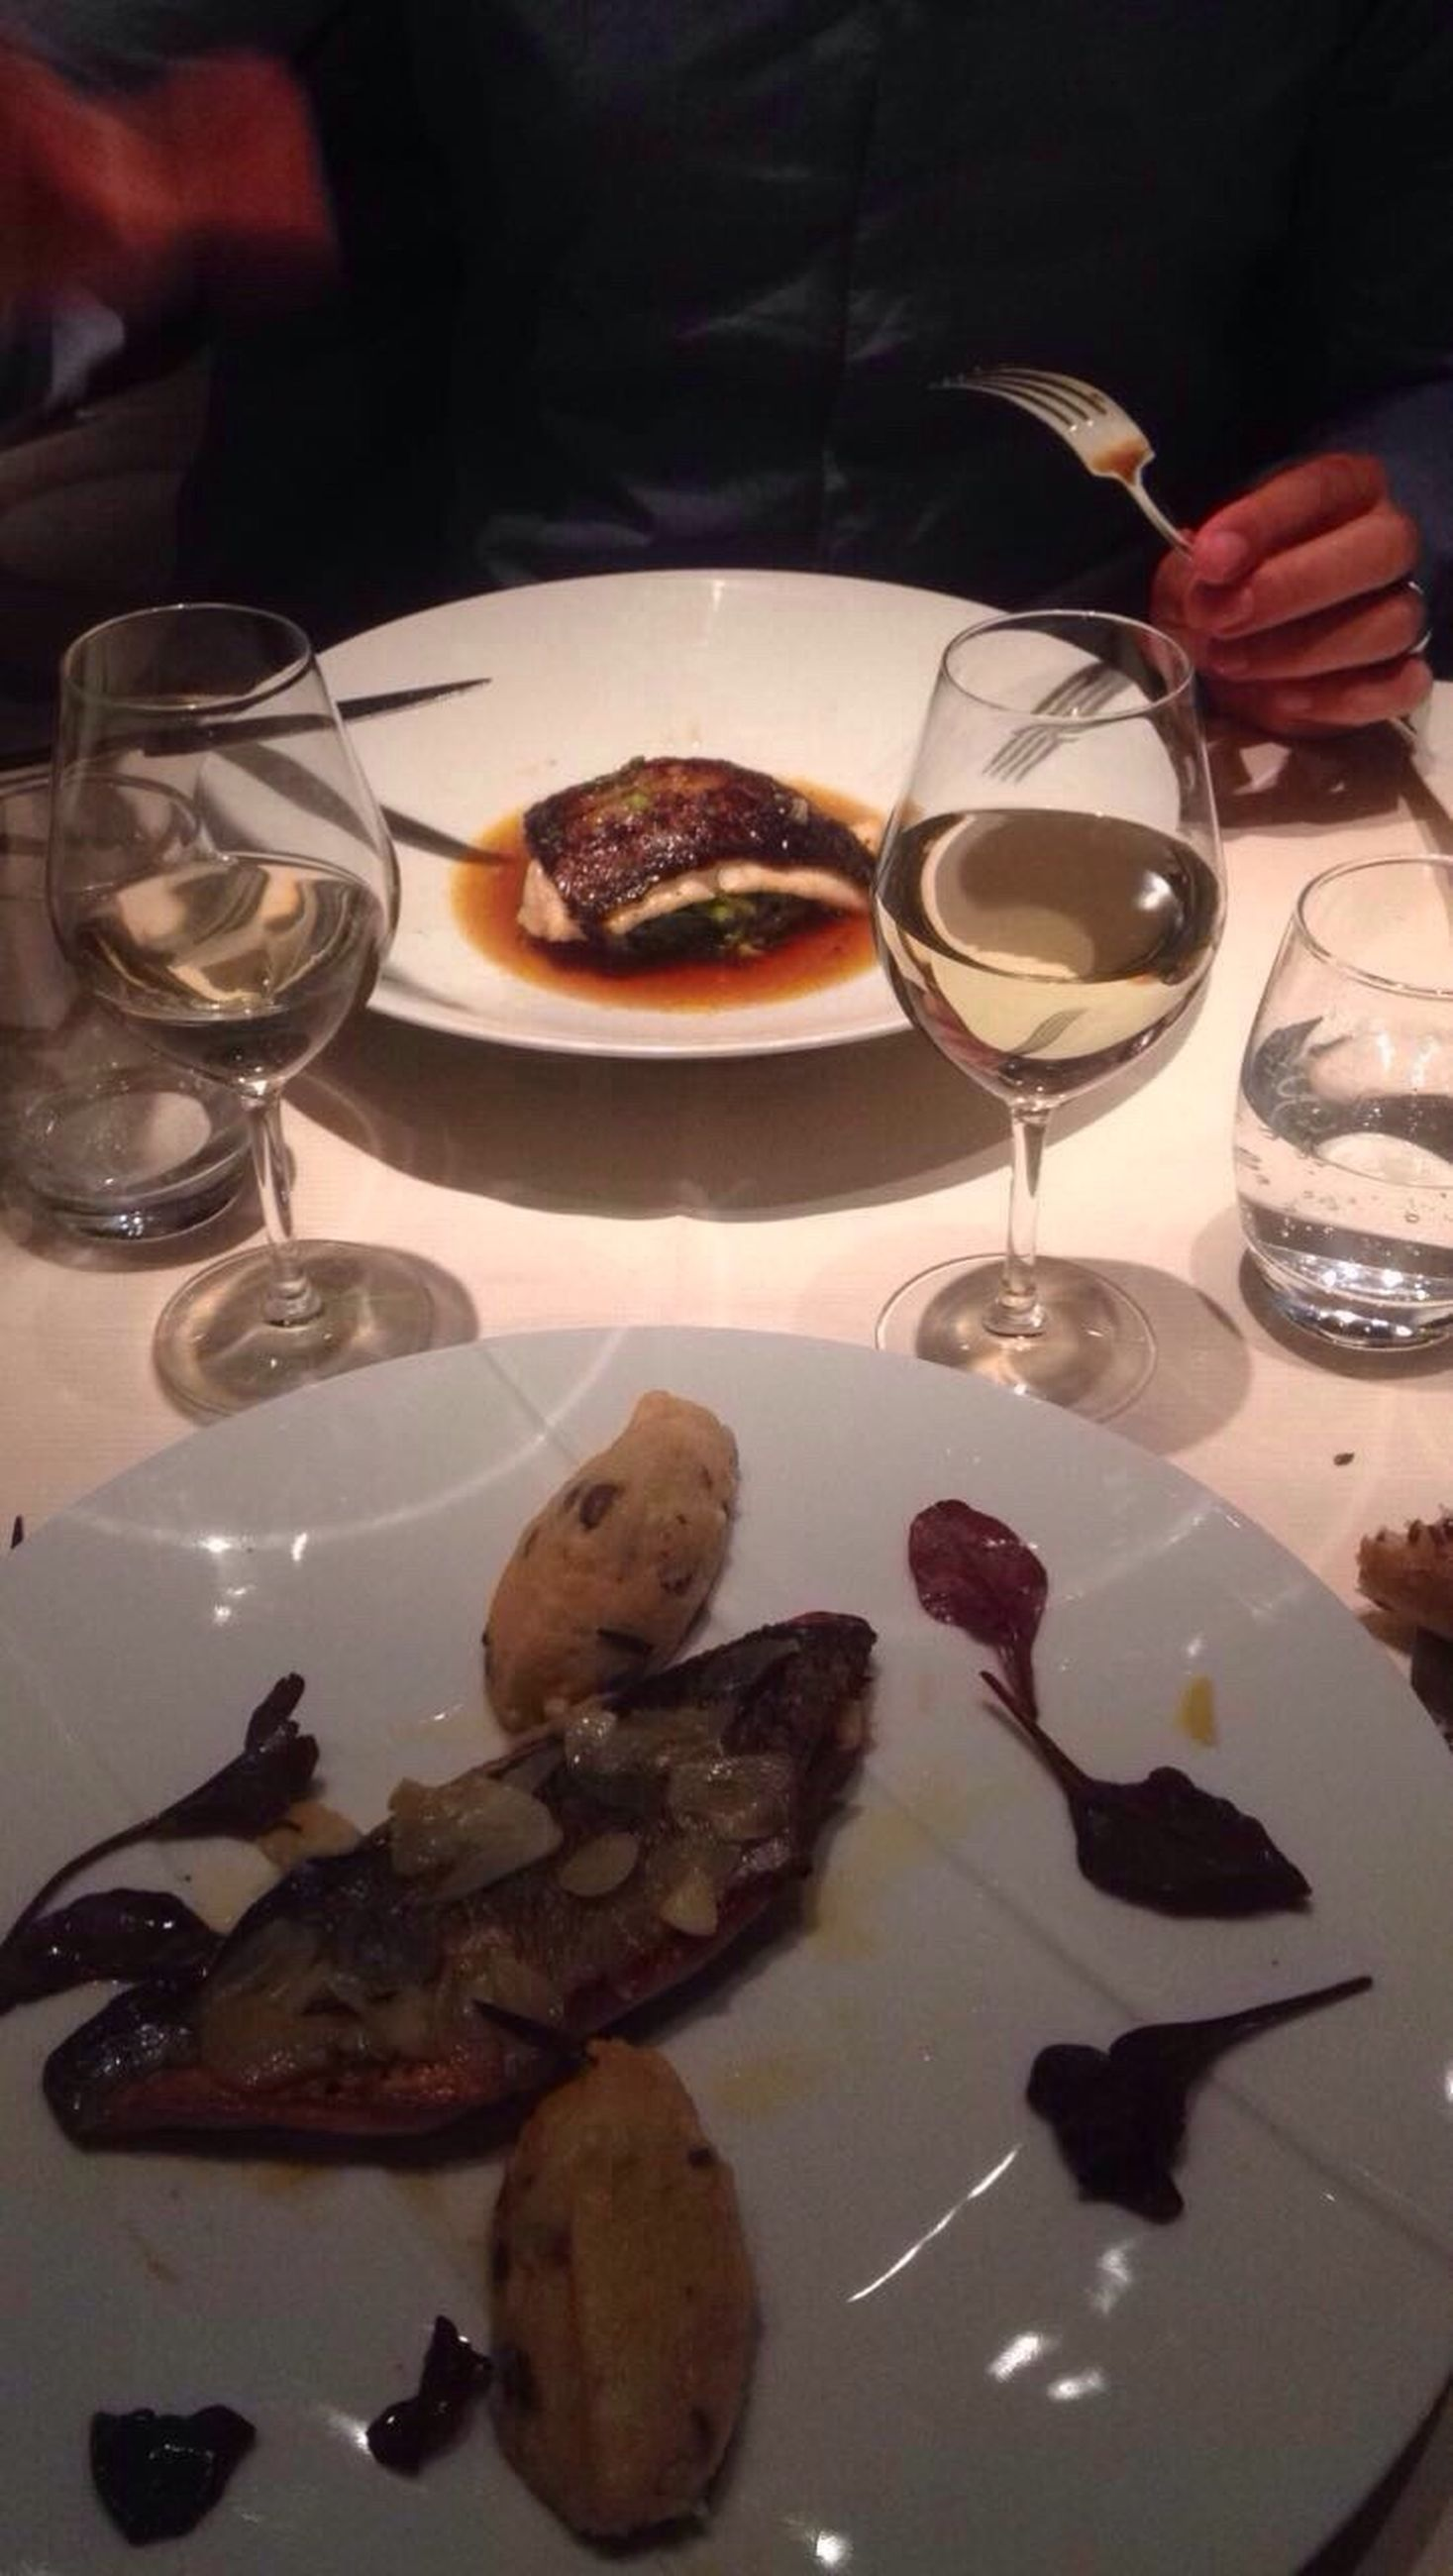 food and drink, food, plate, table, indulgence, wineglass, drinking glass, indoors, ready-to-eat, wine, freshness, serving size, high angle view, no people, drink, appetizer, alcohol, meal, gourmet, unhealthy eating, temptation, close-up, sweet food, day